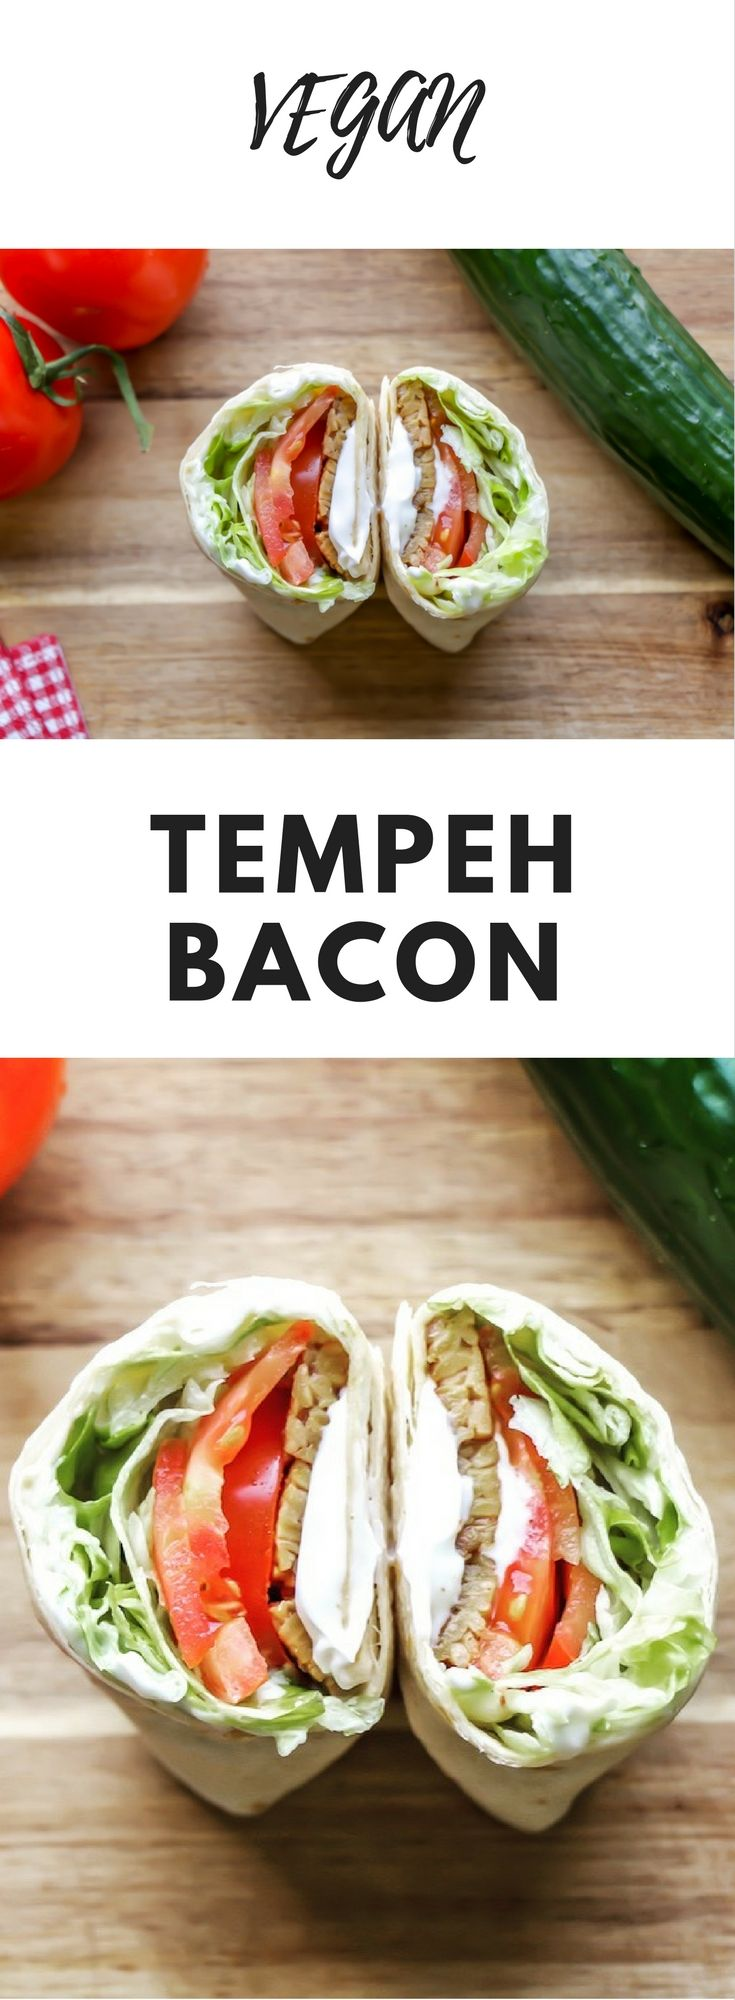 Vegan Tempeh Bacon Wraps - This awesome smokey Vegan Tempeh Bacon wrapped in a whole-wheat tortilla is seriously going to knock your socks off!! And there are so many recipes you can make with the tempeh bacon! Great for a hassle-free lunch!